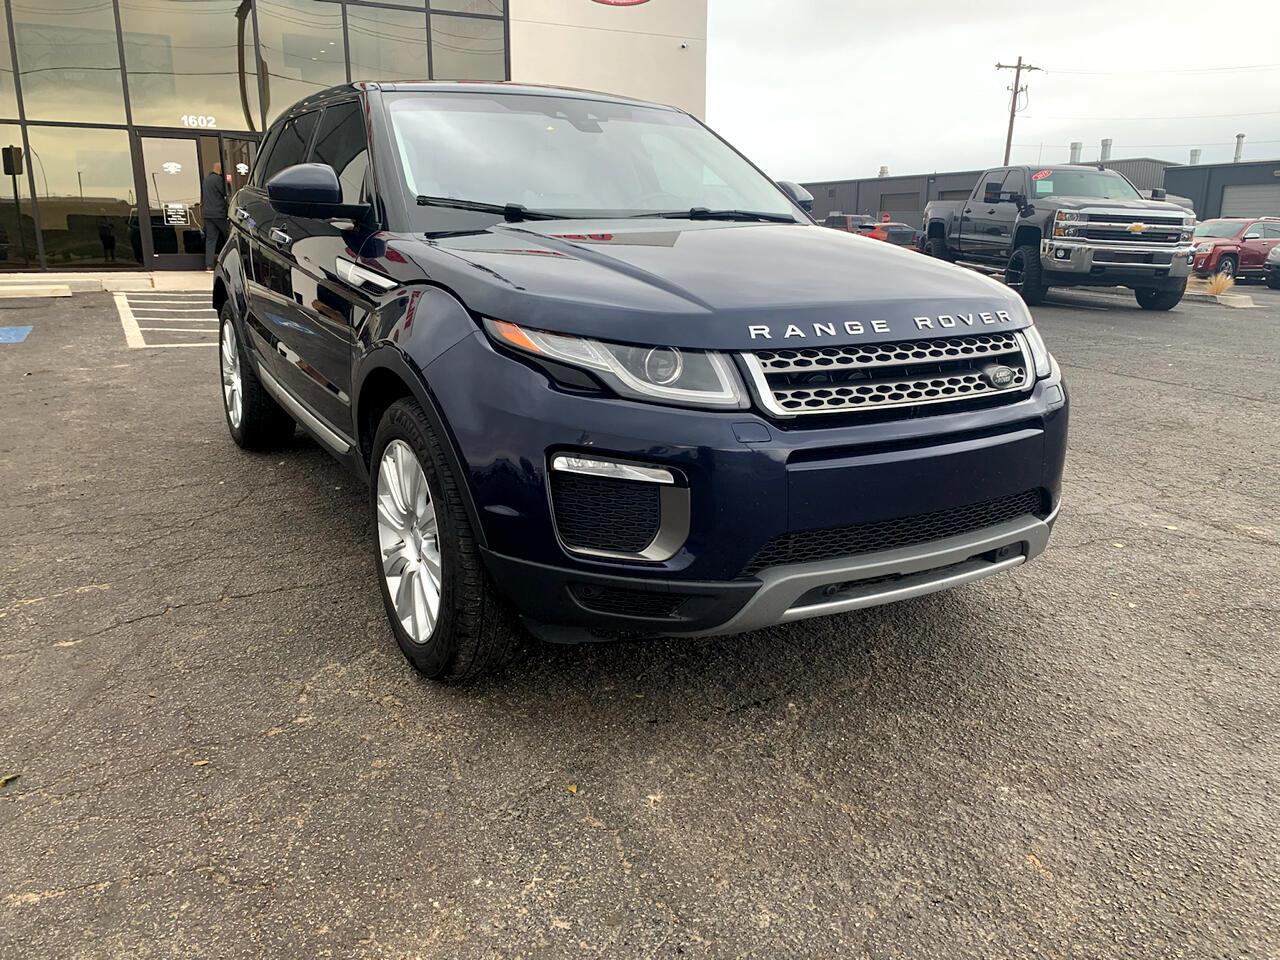 Land Rover Range Rover Evoque 5 Door HSE 2017